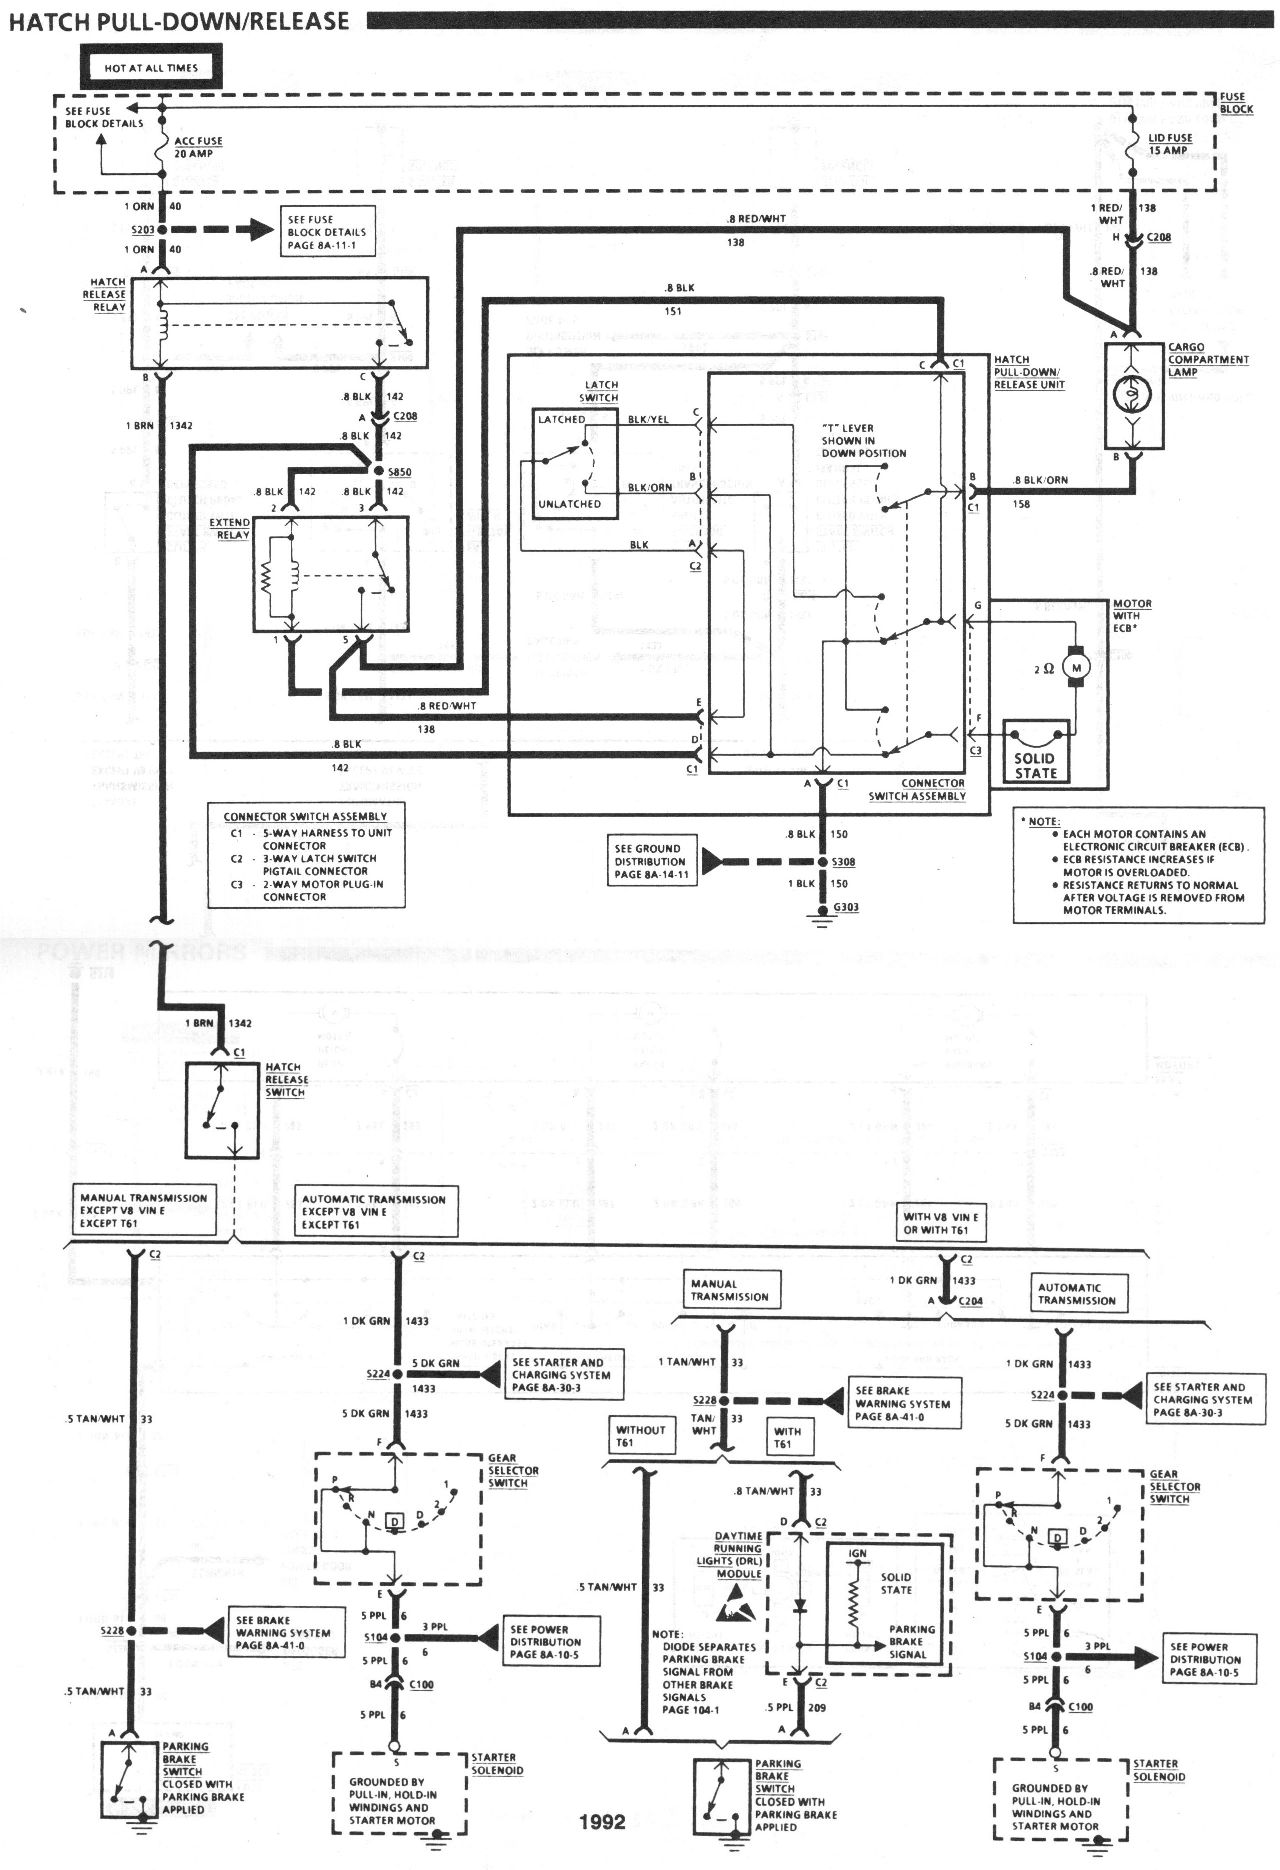 3rd Gen Camaro Fuse Box Housing : 31 Wiring Diagram Images